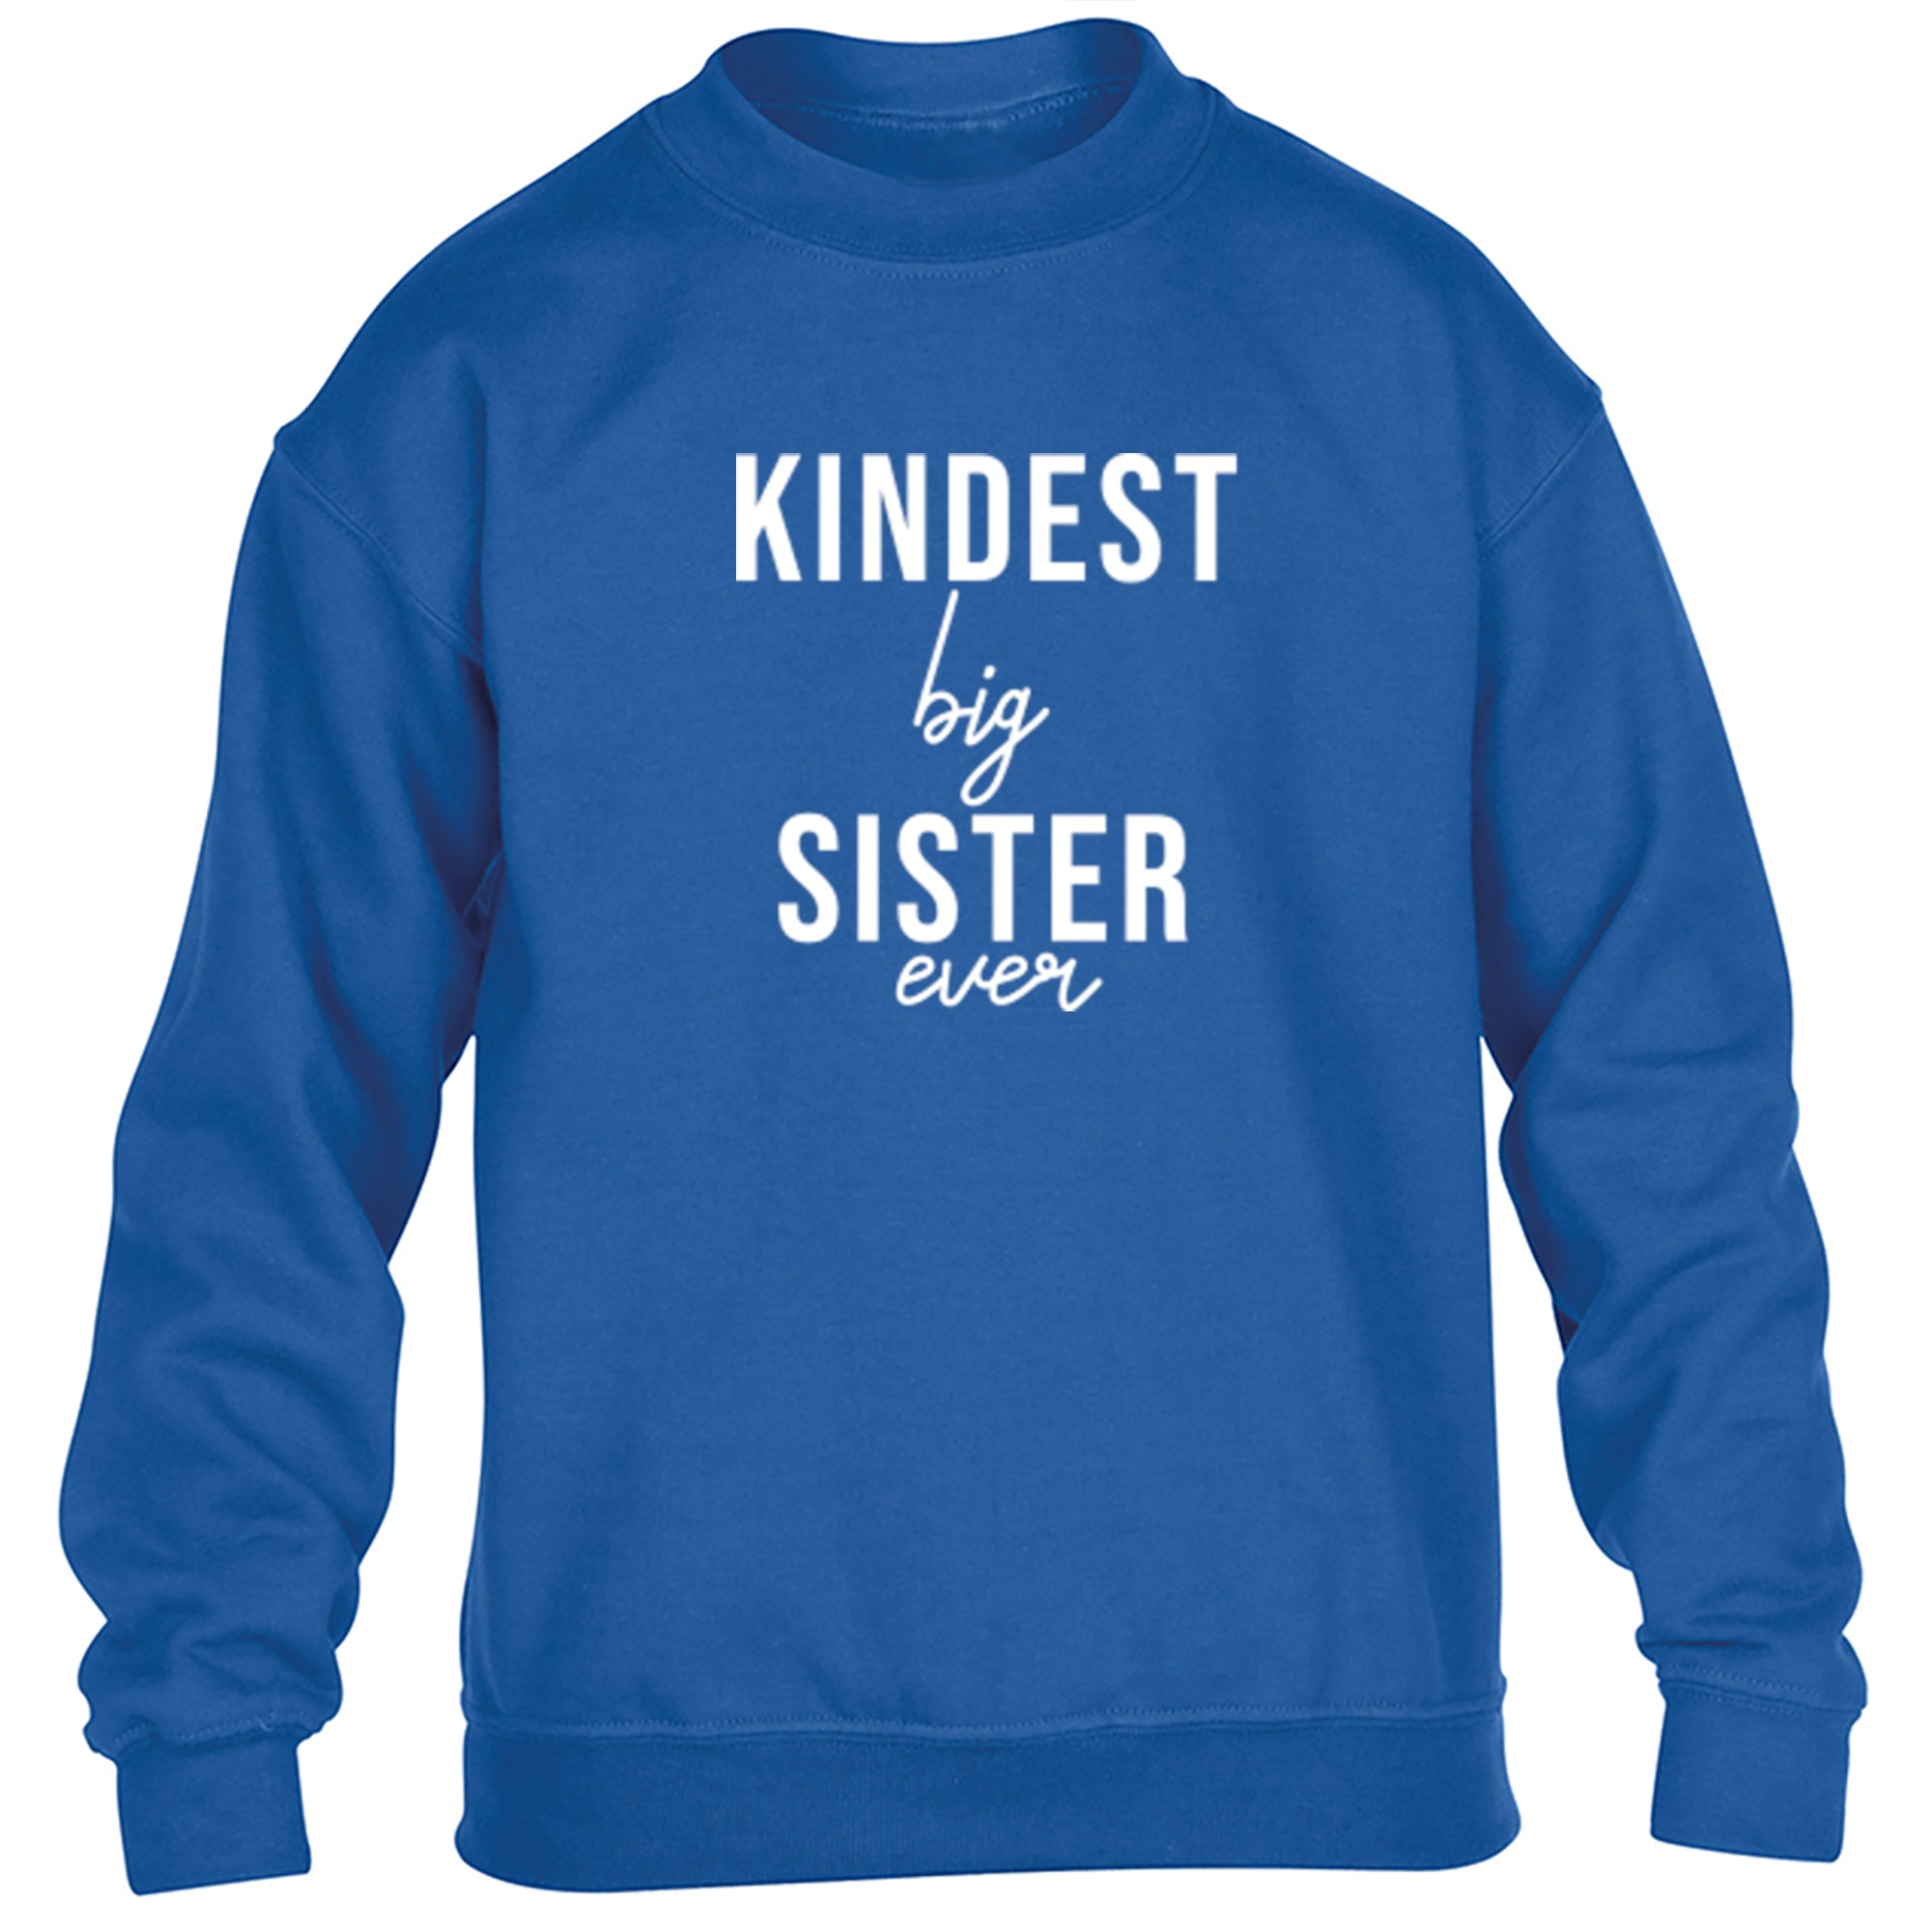 Kindest Big Sister Ever Childrens Ages 3/4-12/14 Unisex Jumper S0513 - Illustrated Identity Ltd.